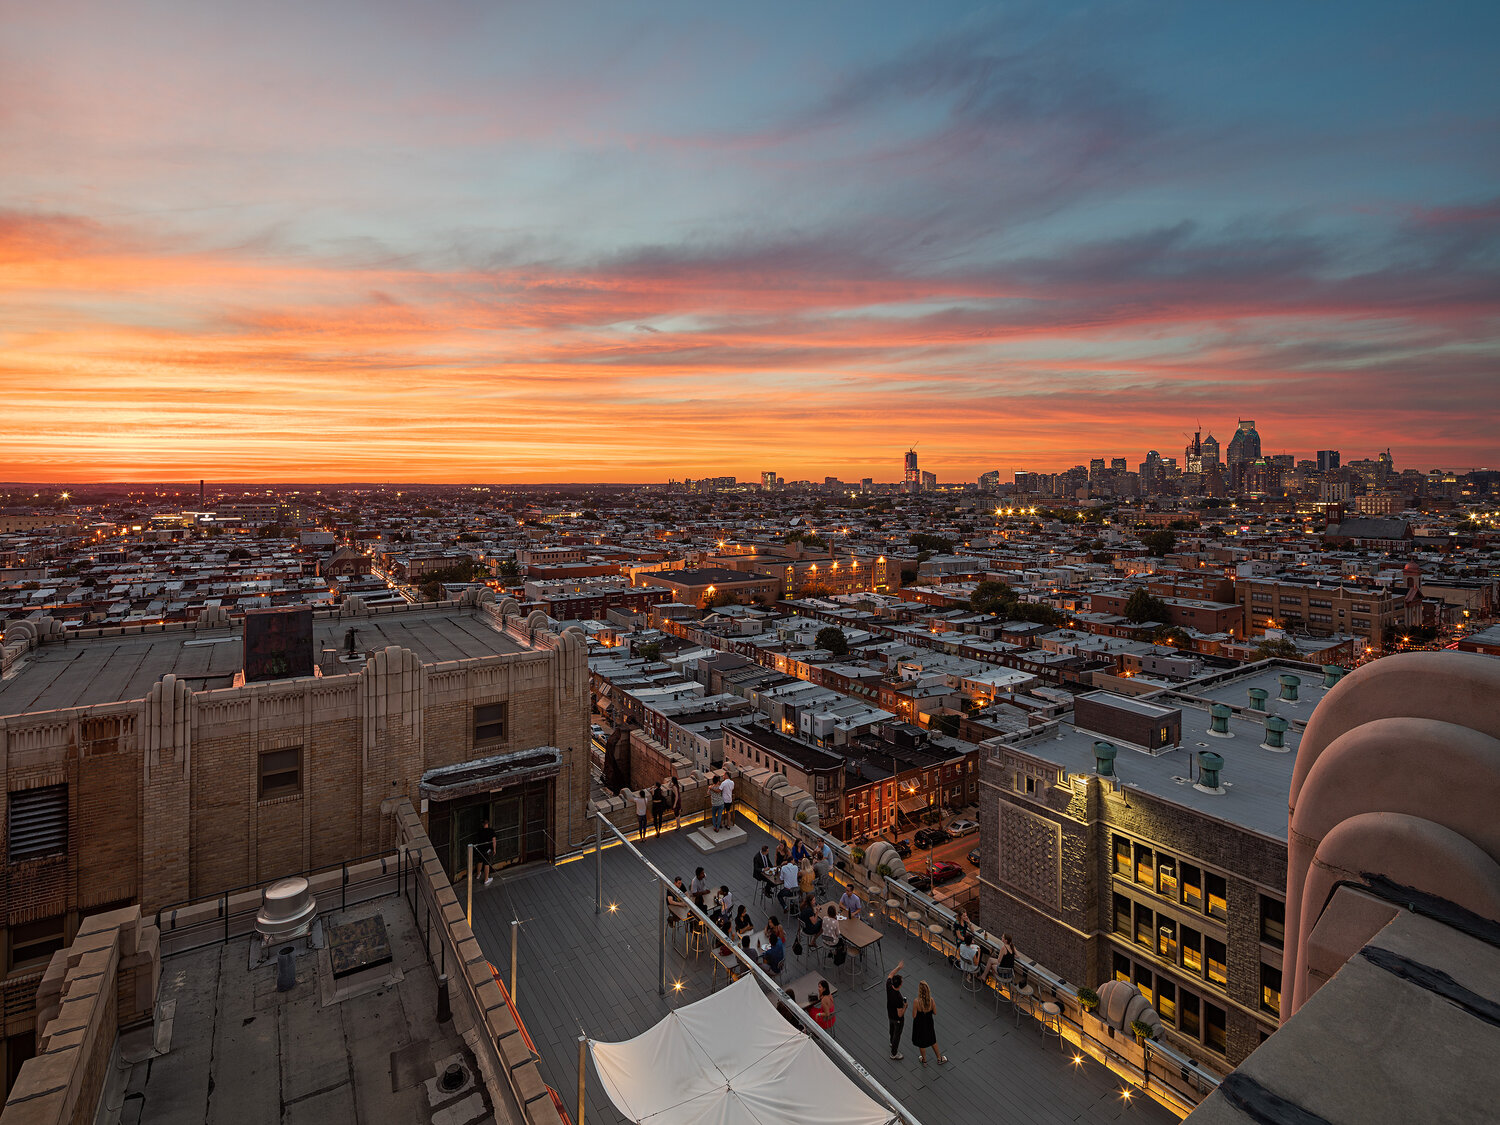 rooftop bar in city with skyline and sunset